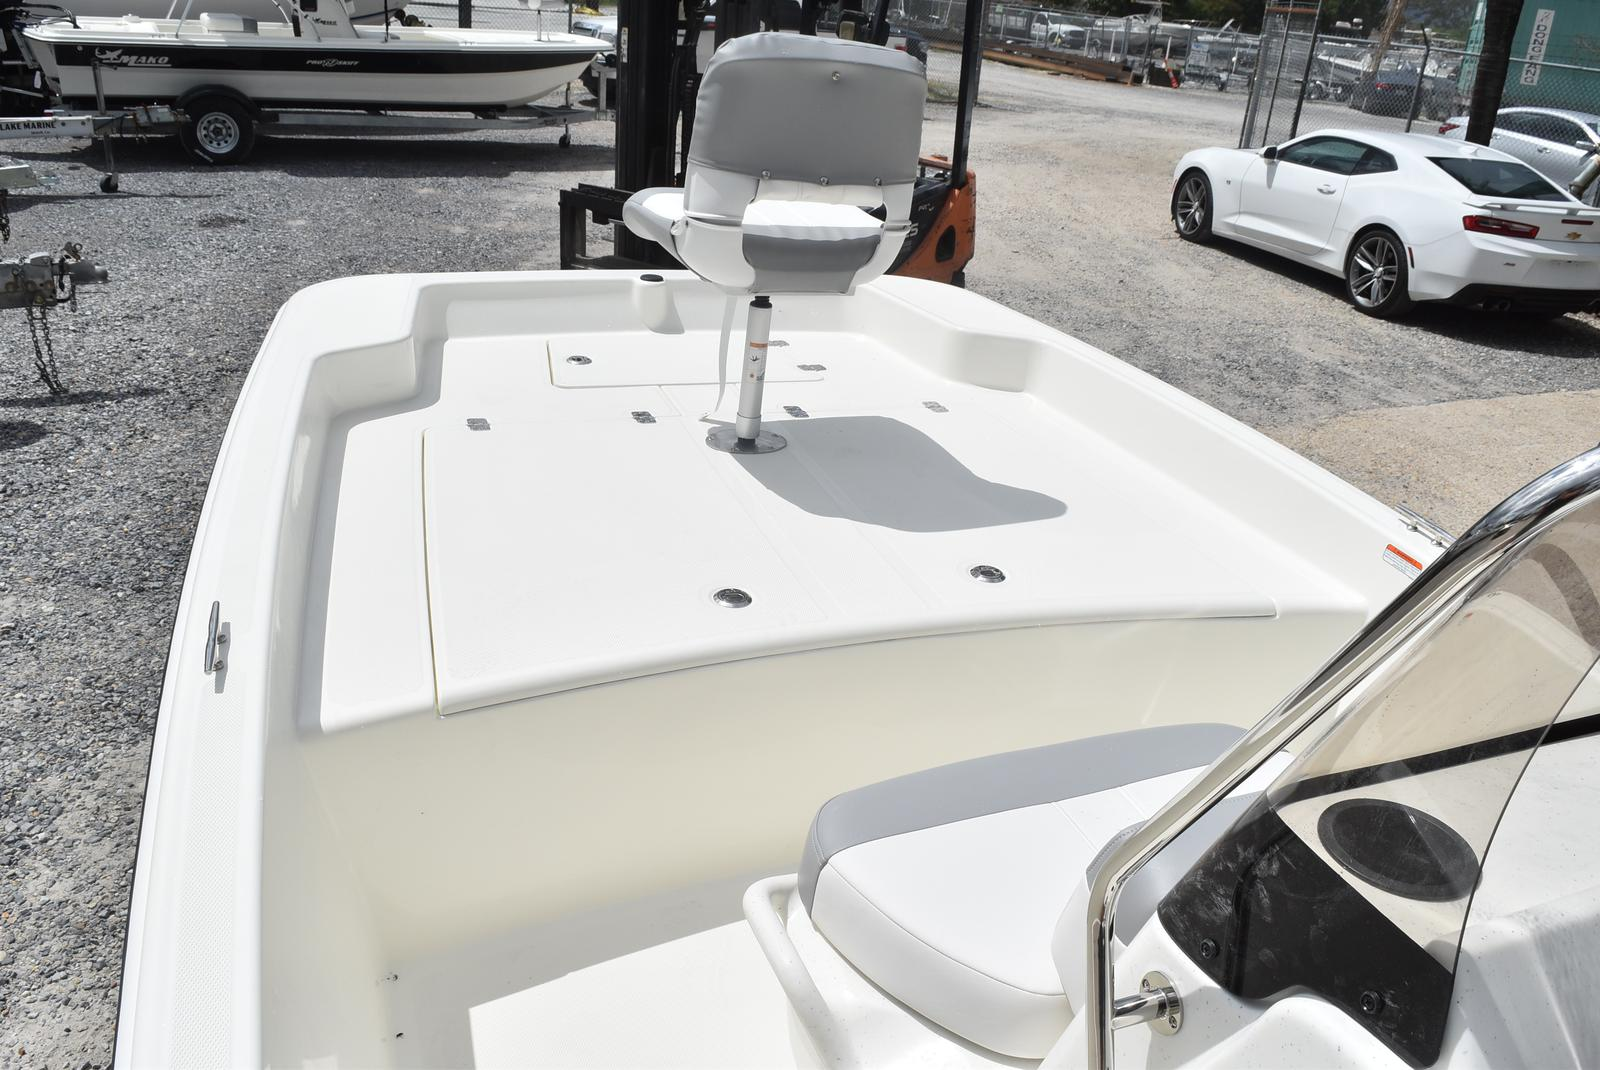 2020 Mako boat for sale, model of the boat is Pro Skiff 17, 75 ELPT & Image # 411 of 702